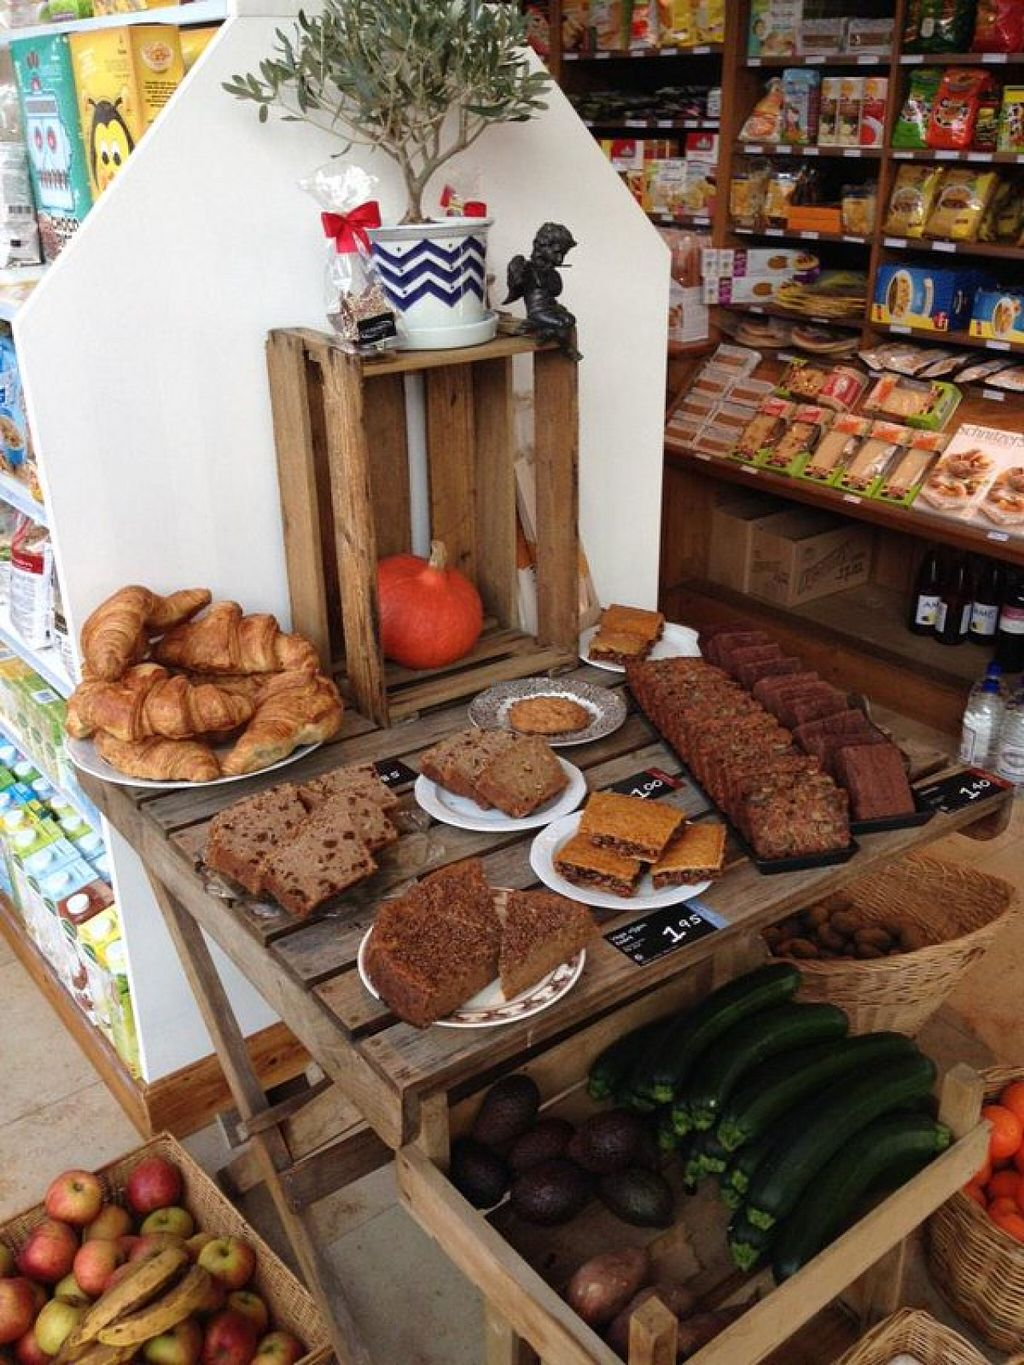 """Photo of CLOSED: Happy Food Store  by <a href=""""/members/profile/KrisRussel"""">KrisRussel</a> <br/>some nice treats to buy <br/> June 12, 2016  - <a href='/contact/abuse/image/74830/153618'>Report</a>"""